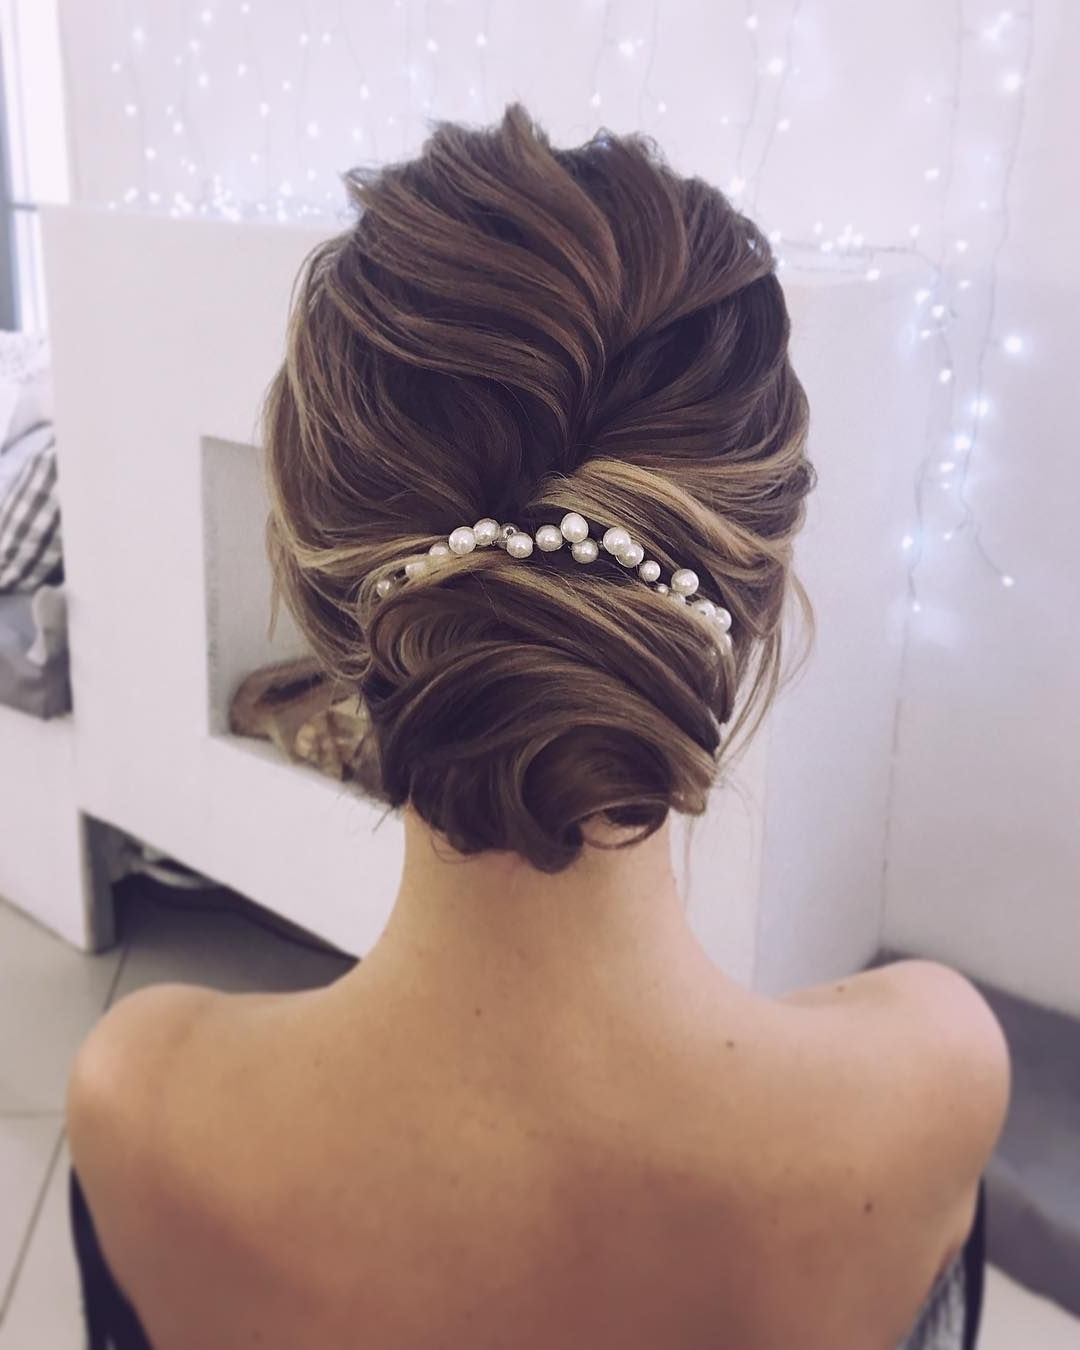 Most Popular Chignon Wedding Hairstyles Throughout Looking For Gorgeous Wedding Hairstyle? Classic Chignon, Textured (View 11 of 15)